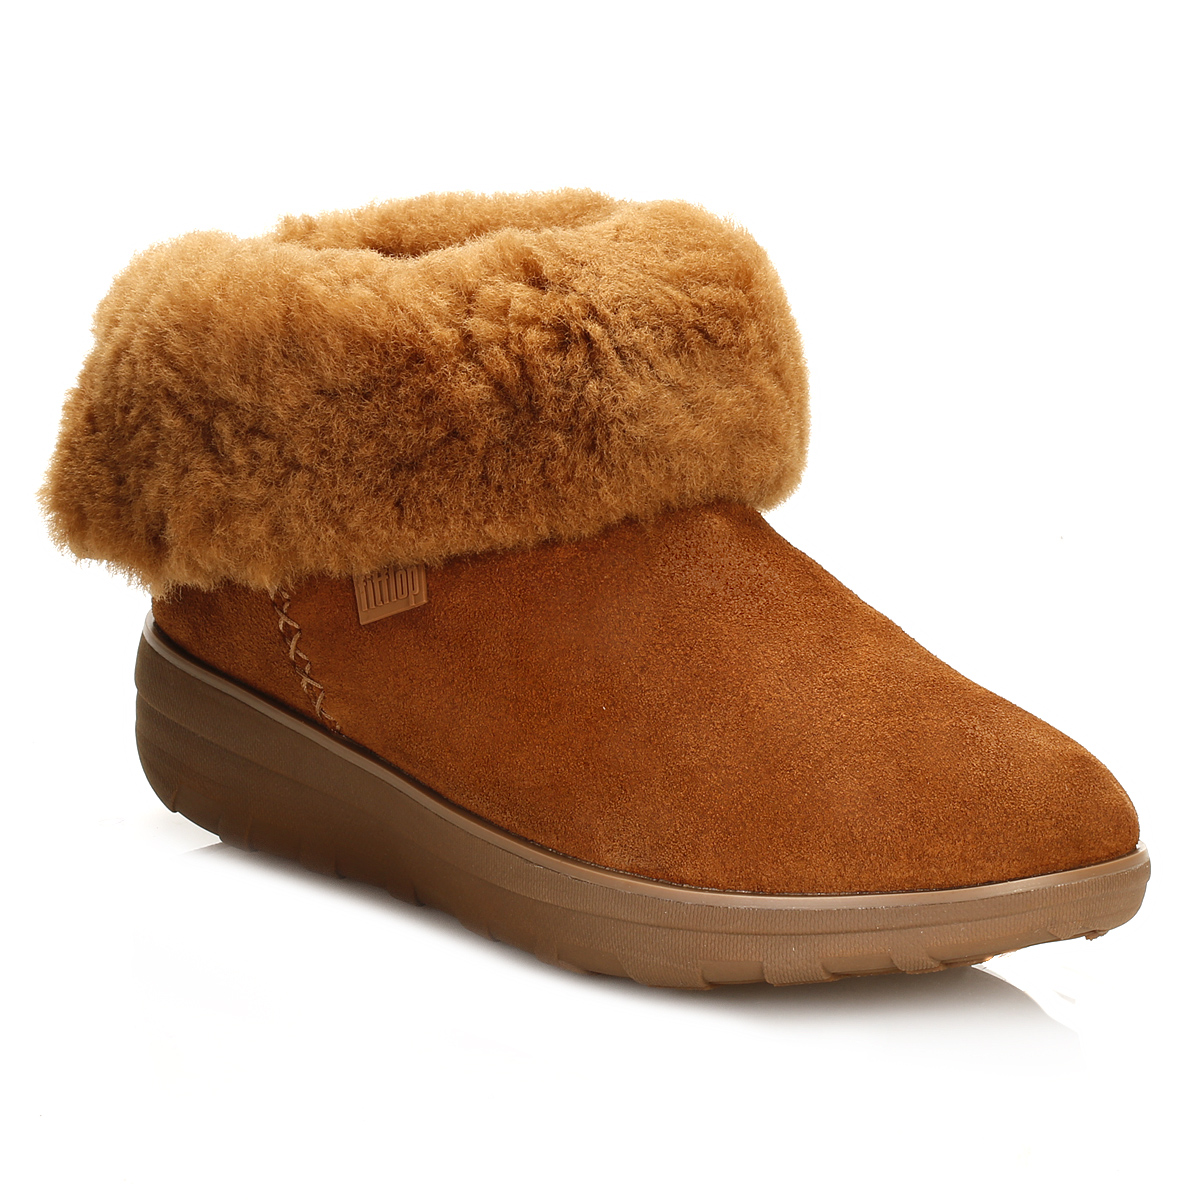 827979652874e FitFlop-Womens-Tan-Brown-Suede-Boots-Mukluk-Shorty-